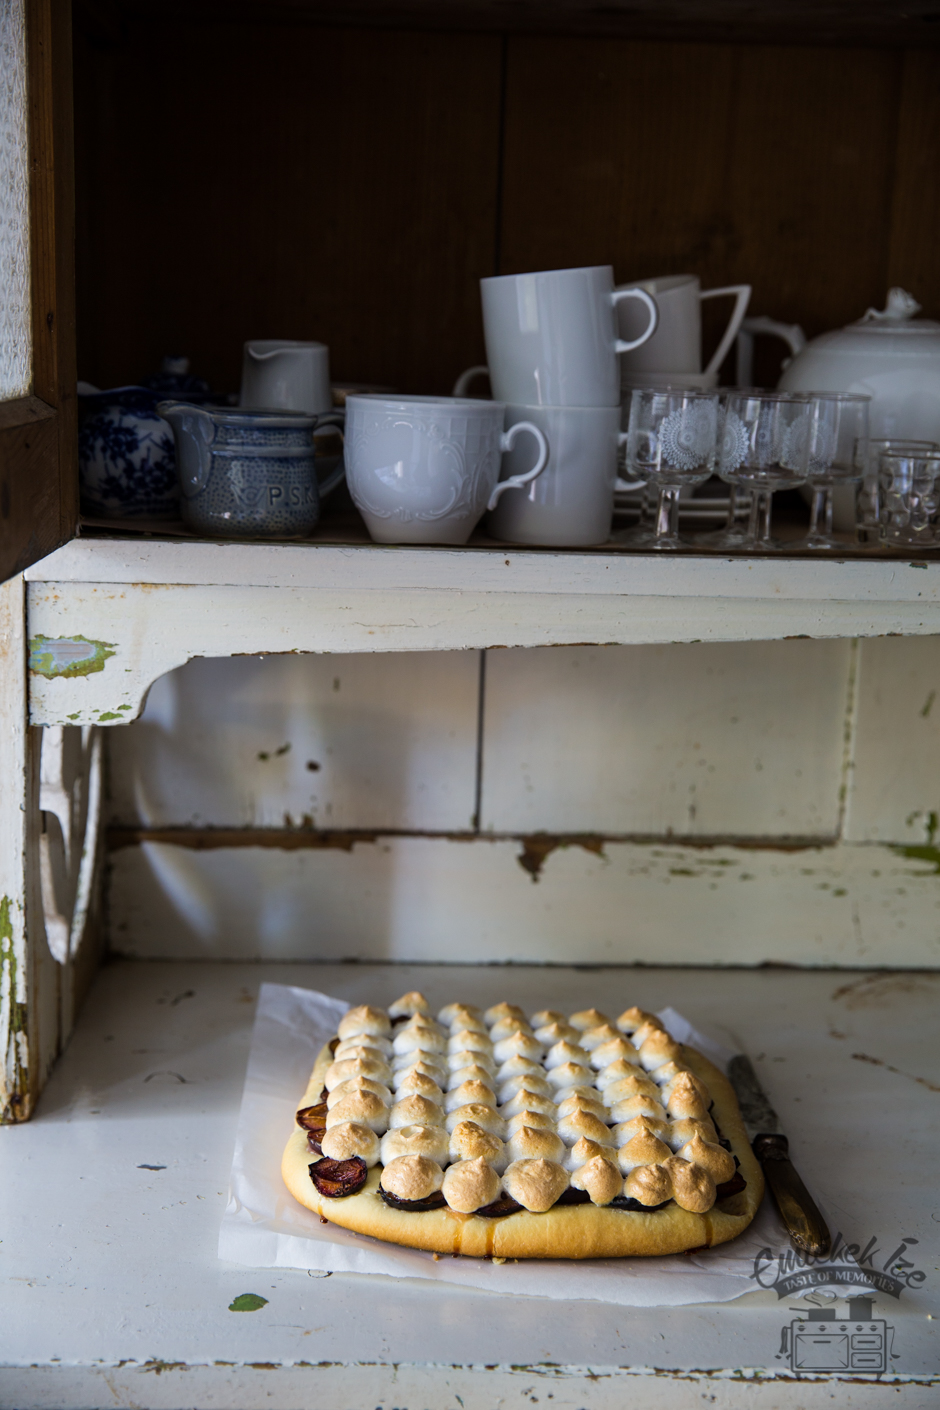 plum pie recipe from the Taste of Memories countryside kitchen